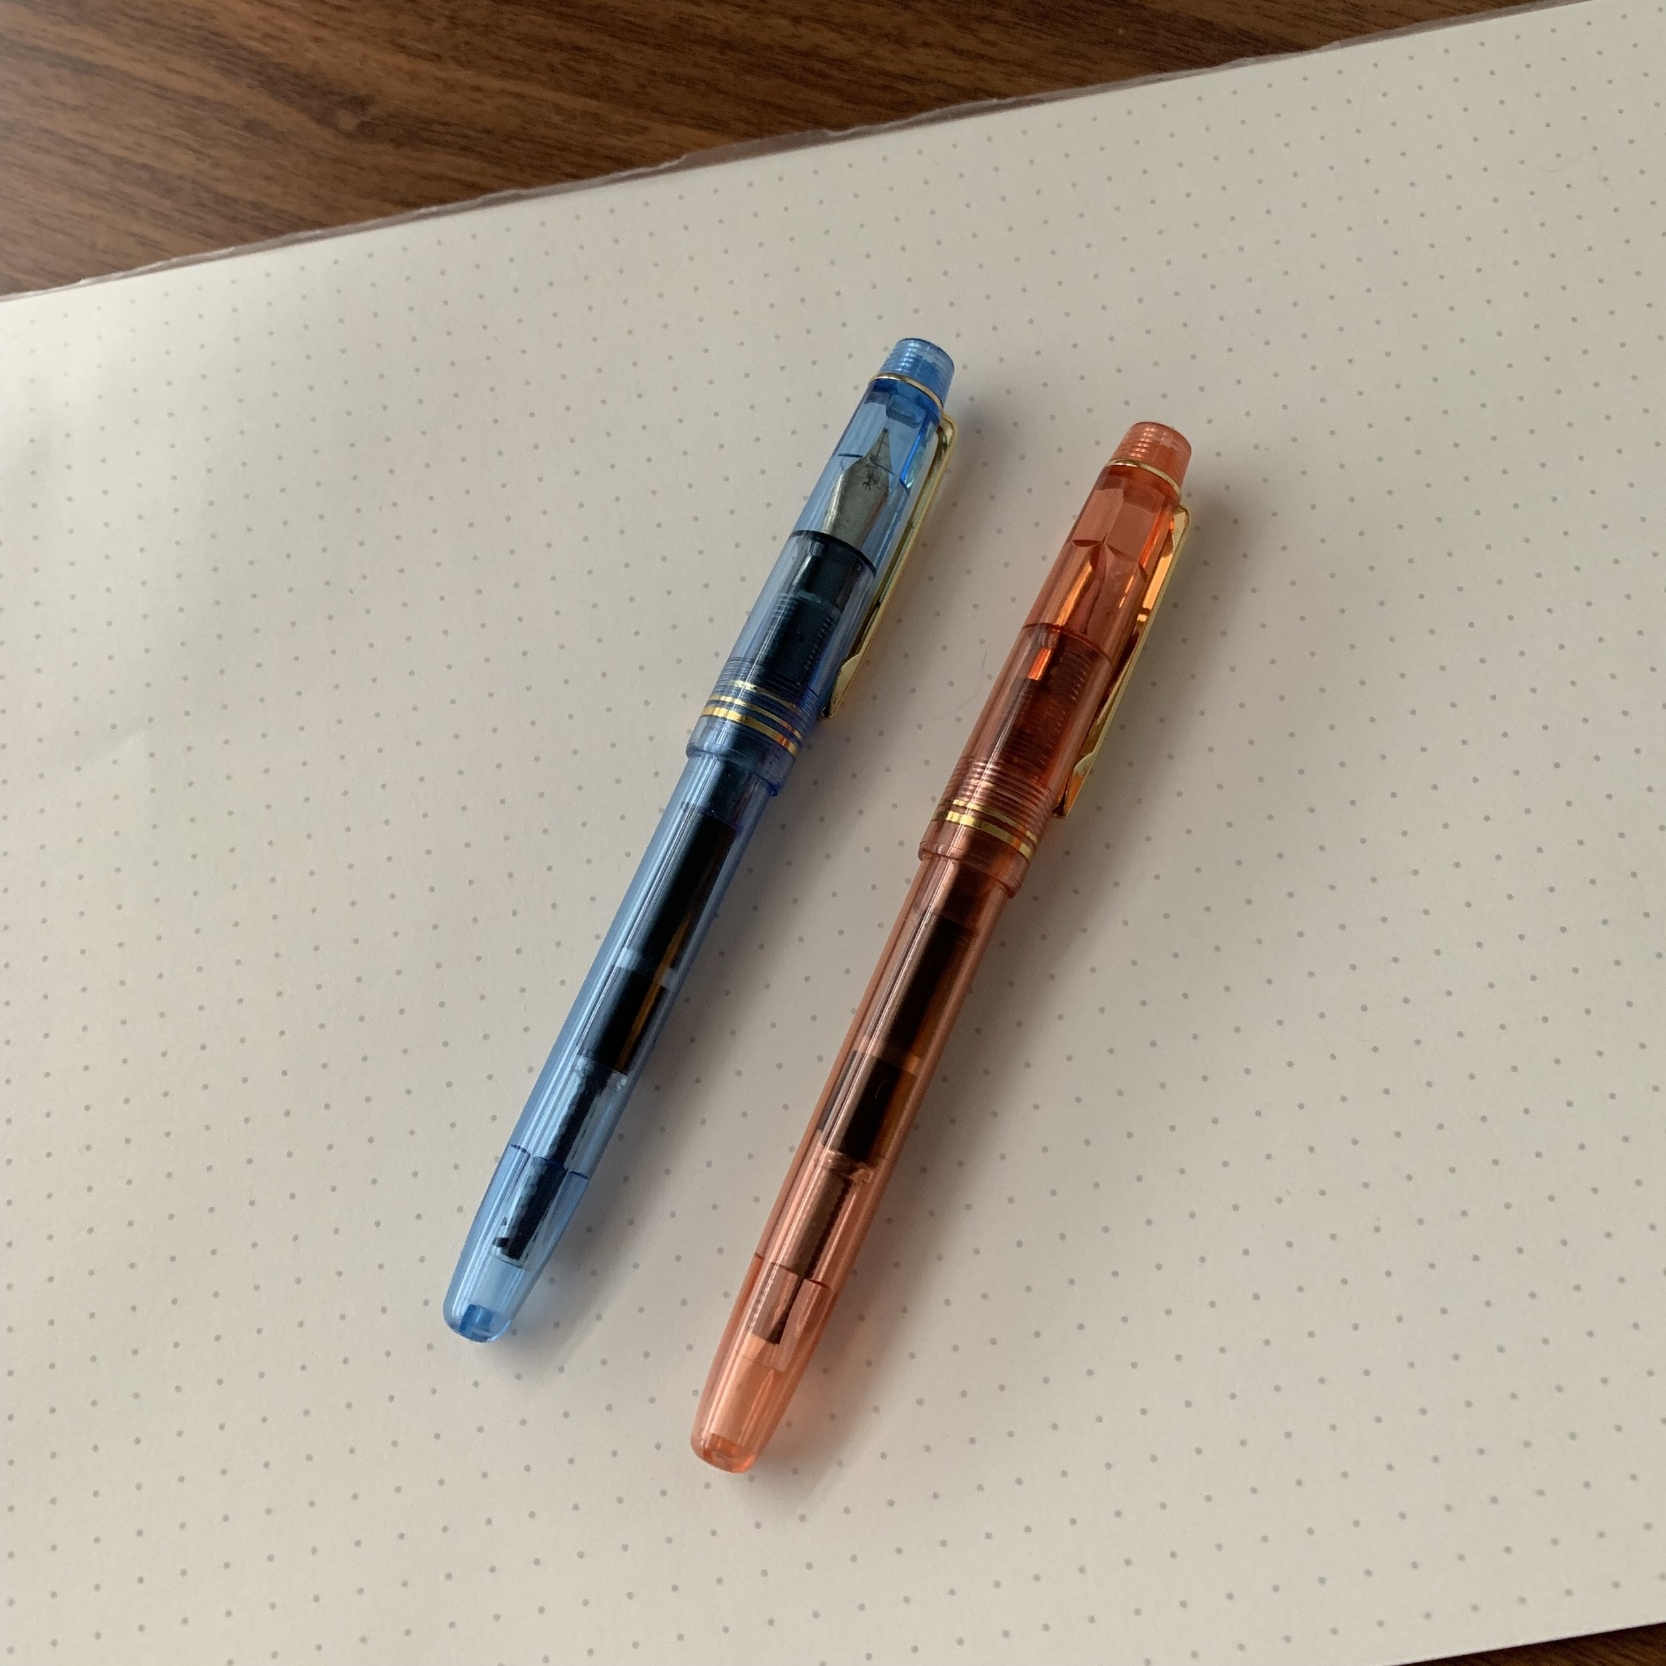 Spoiler alert! Of all the extremely inexpensive pens I've reviewed to date, the Wing Sung 3001 is my favorite.